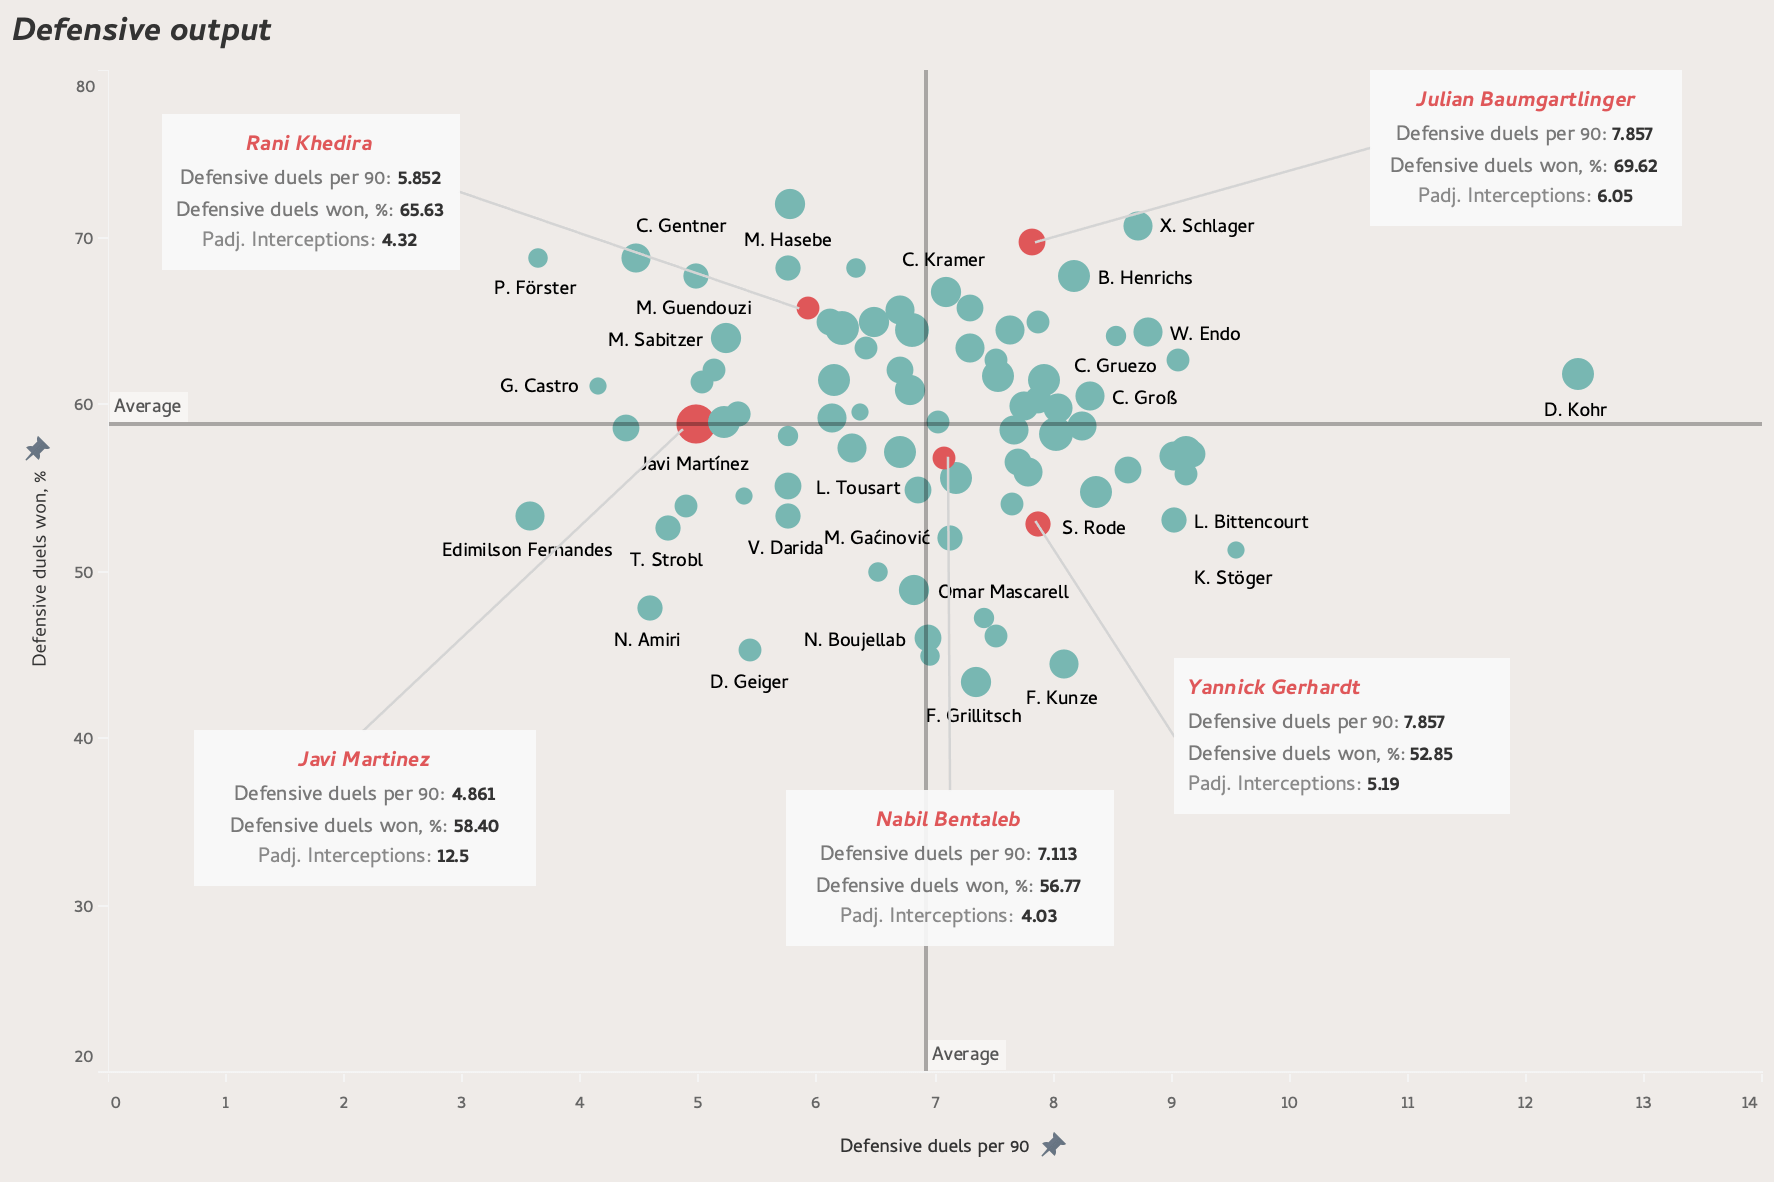 The free transfer market: Bundesliga players with expiring contracts - data analysis statistics